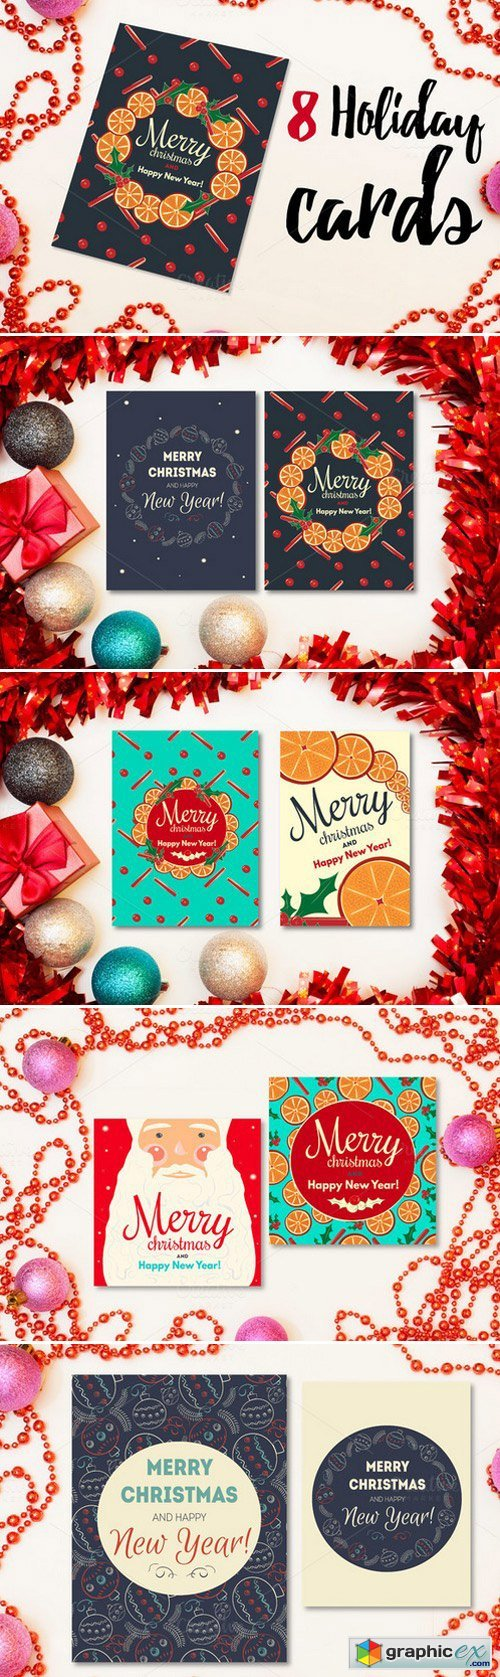 8 holiday cards with 3 patterns